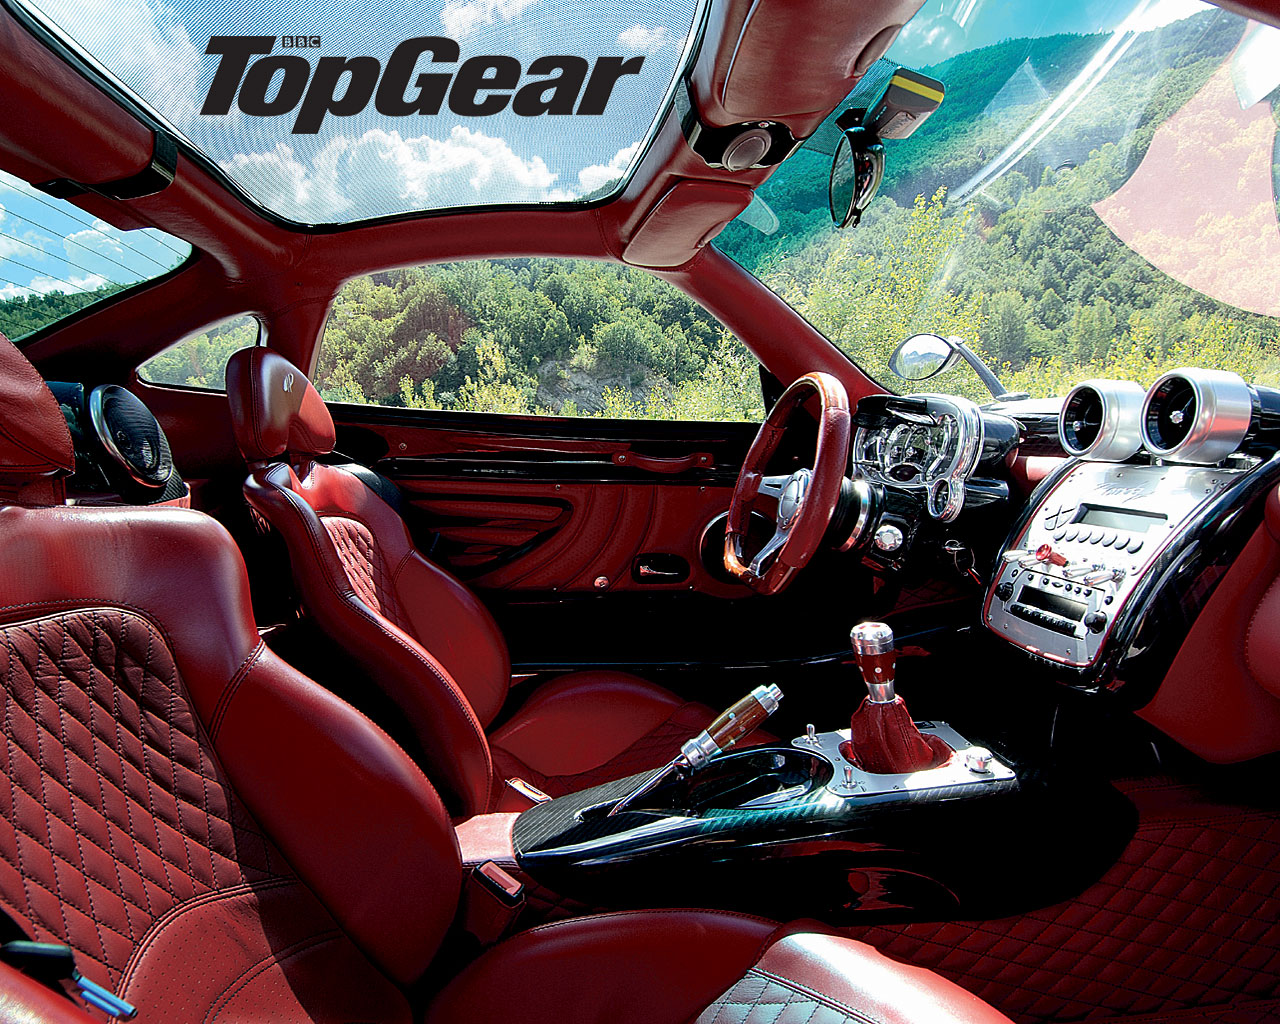 Top Gear Zonda S Windows 7 Car Wallpapers Pagani Zonda F Interior 1280x1024 Wallpaper Teahub Io